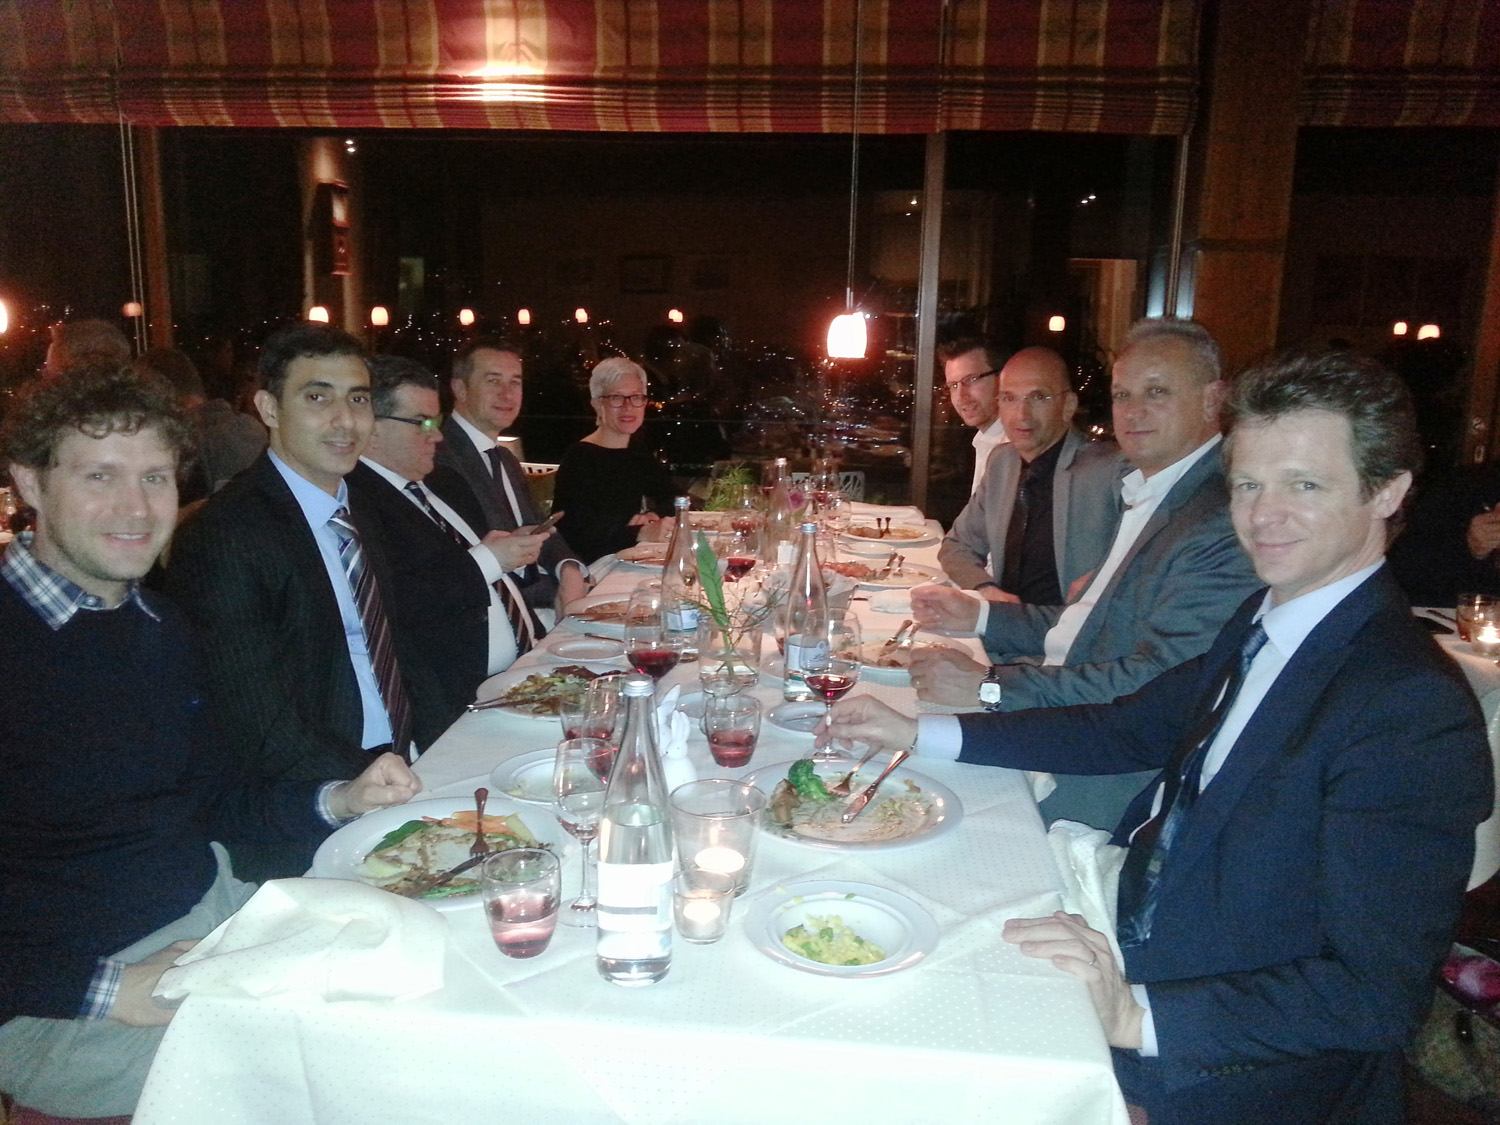 N-Jewellery-Techniques-Director-Mehernosh-Printer-at-dinner-hosted-by-SISMA-at-Basel-Exhibition-Switzerland-March-2015